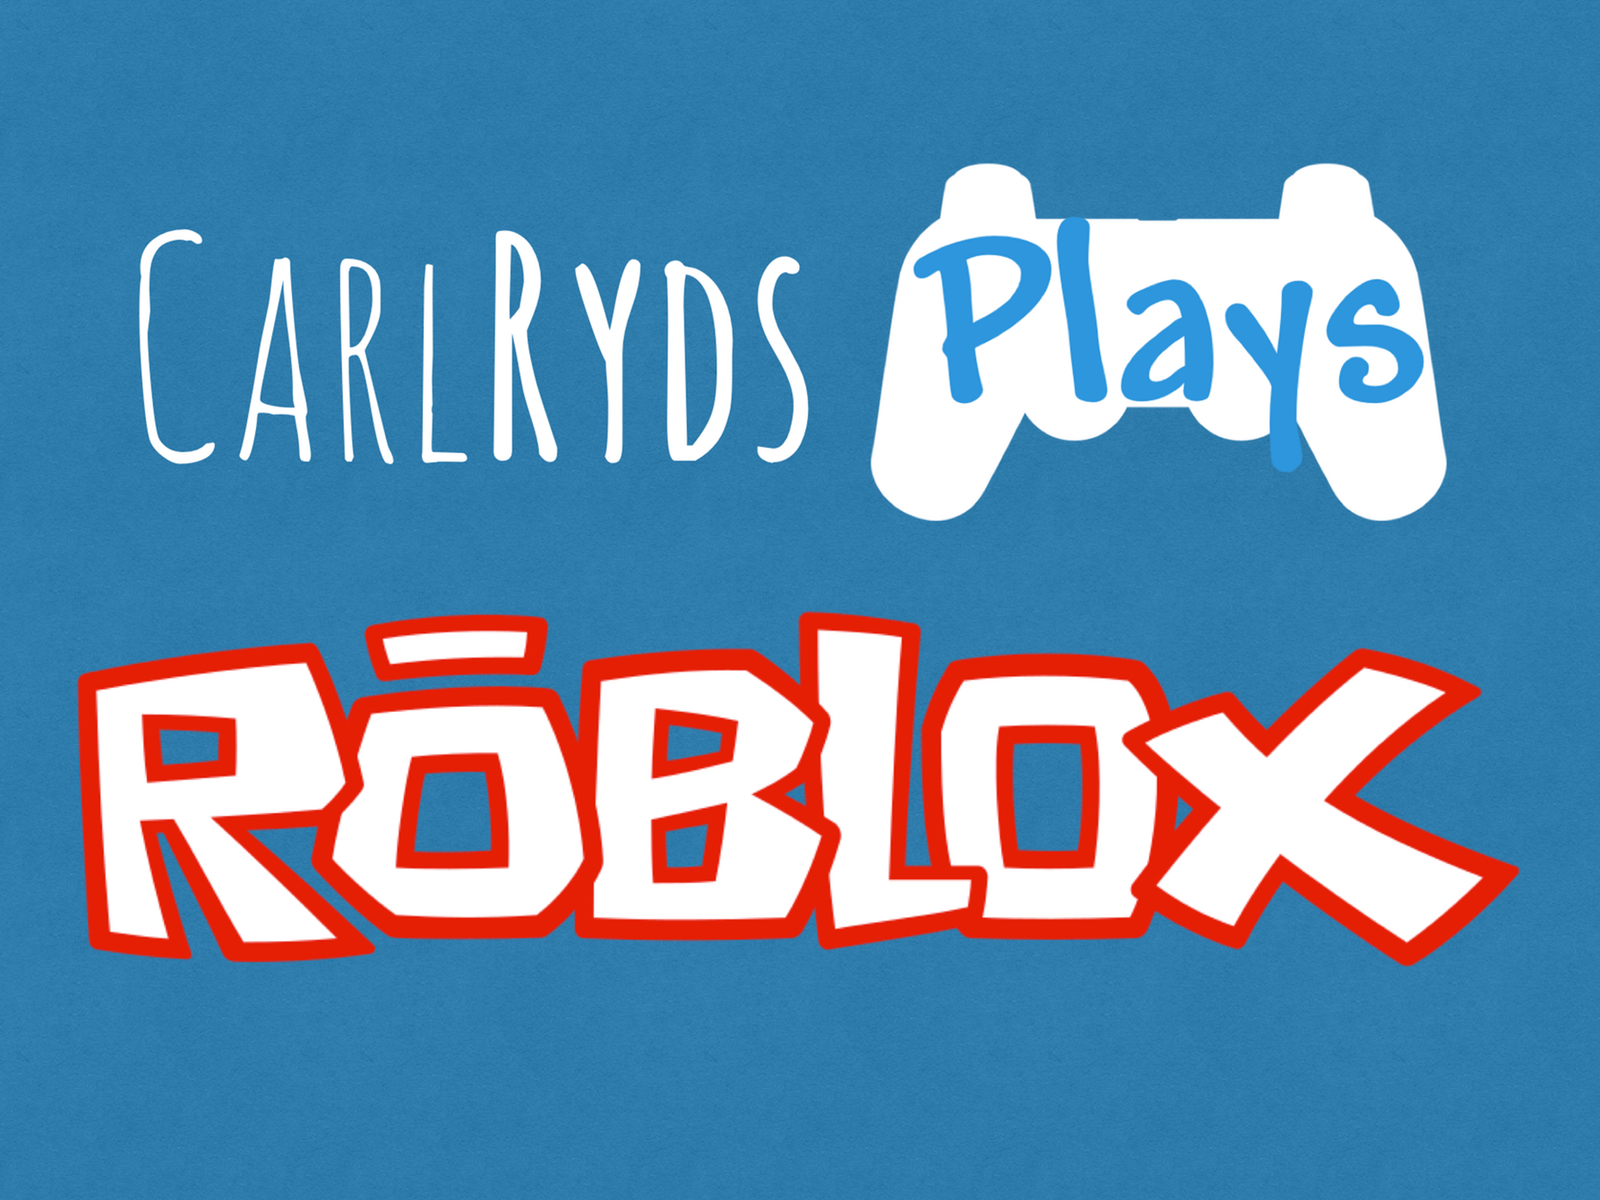 CarlRyds plays Roblox